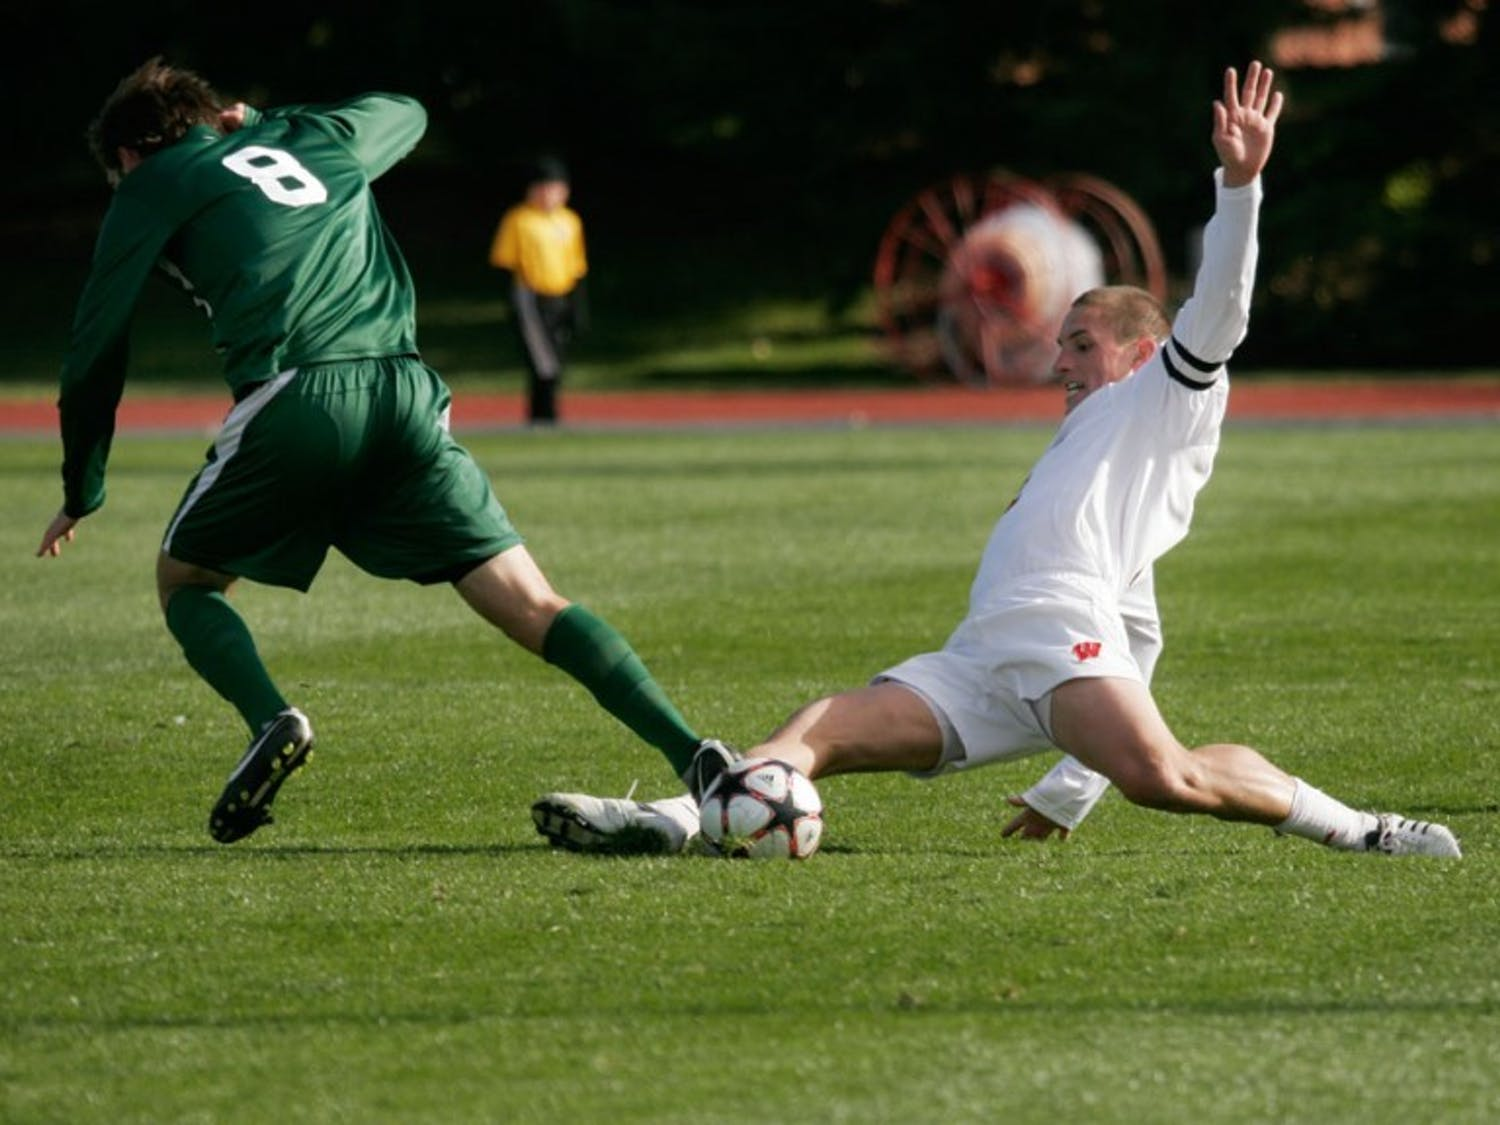 Overtime penalty kick lifts Badgers over Northwestern